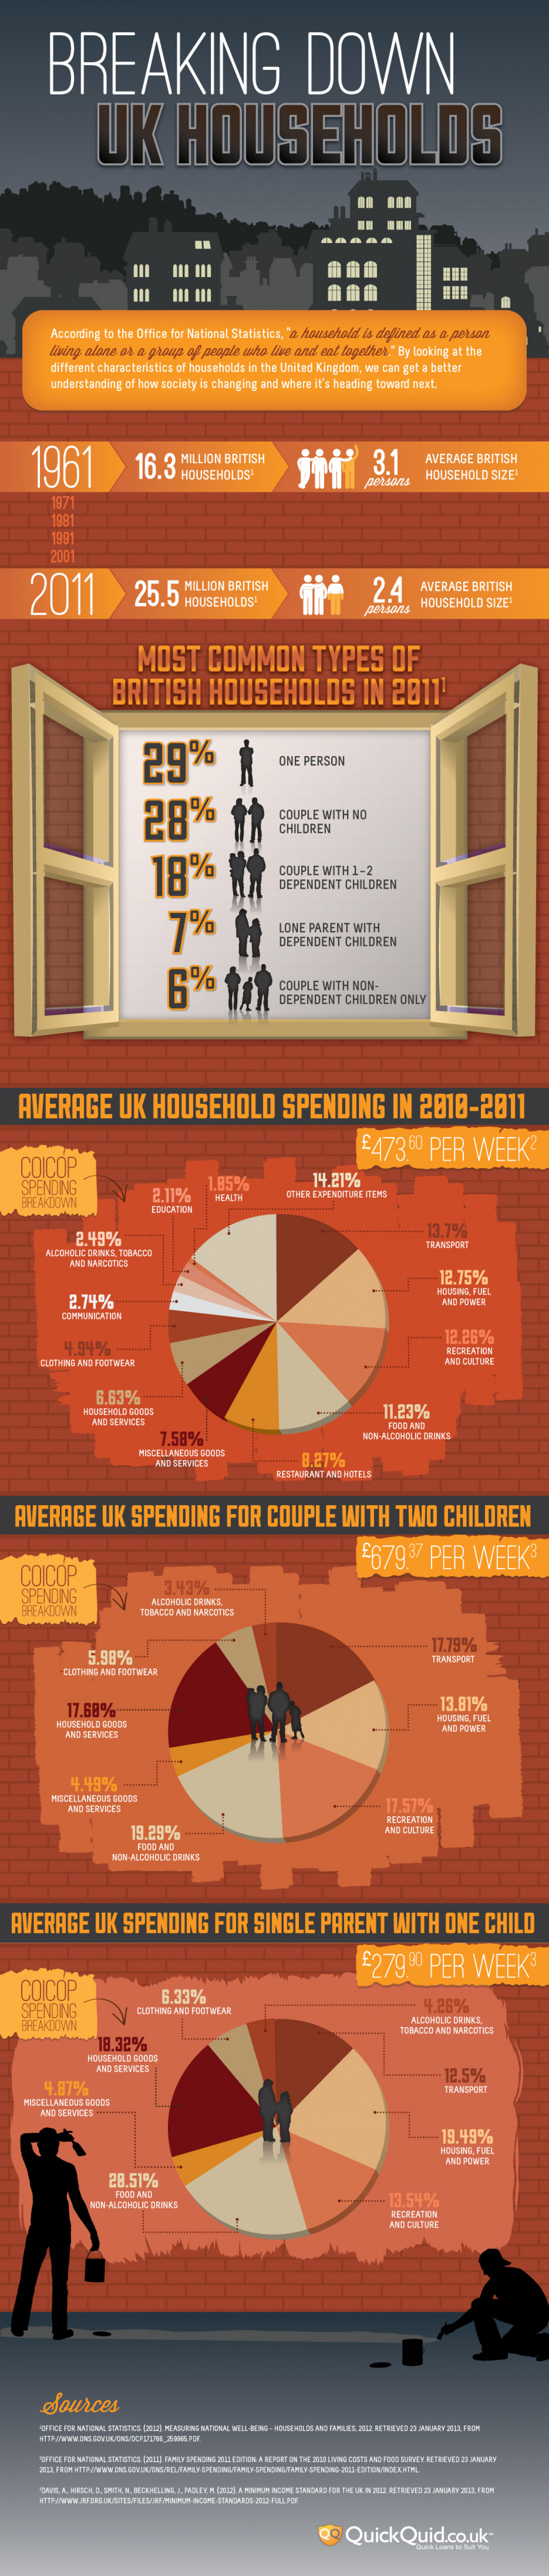 Breaking Down UK Households Infographic